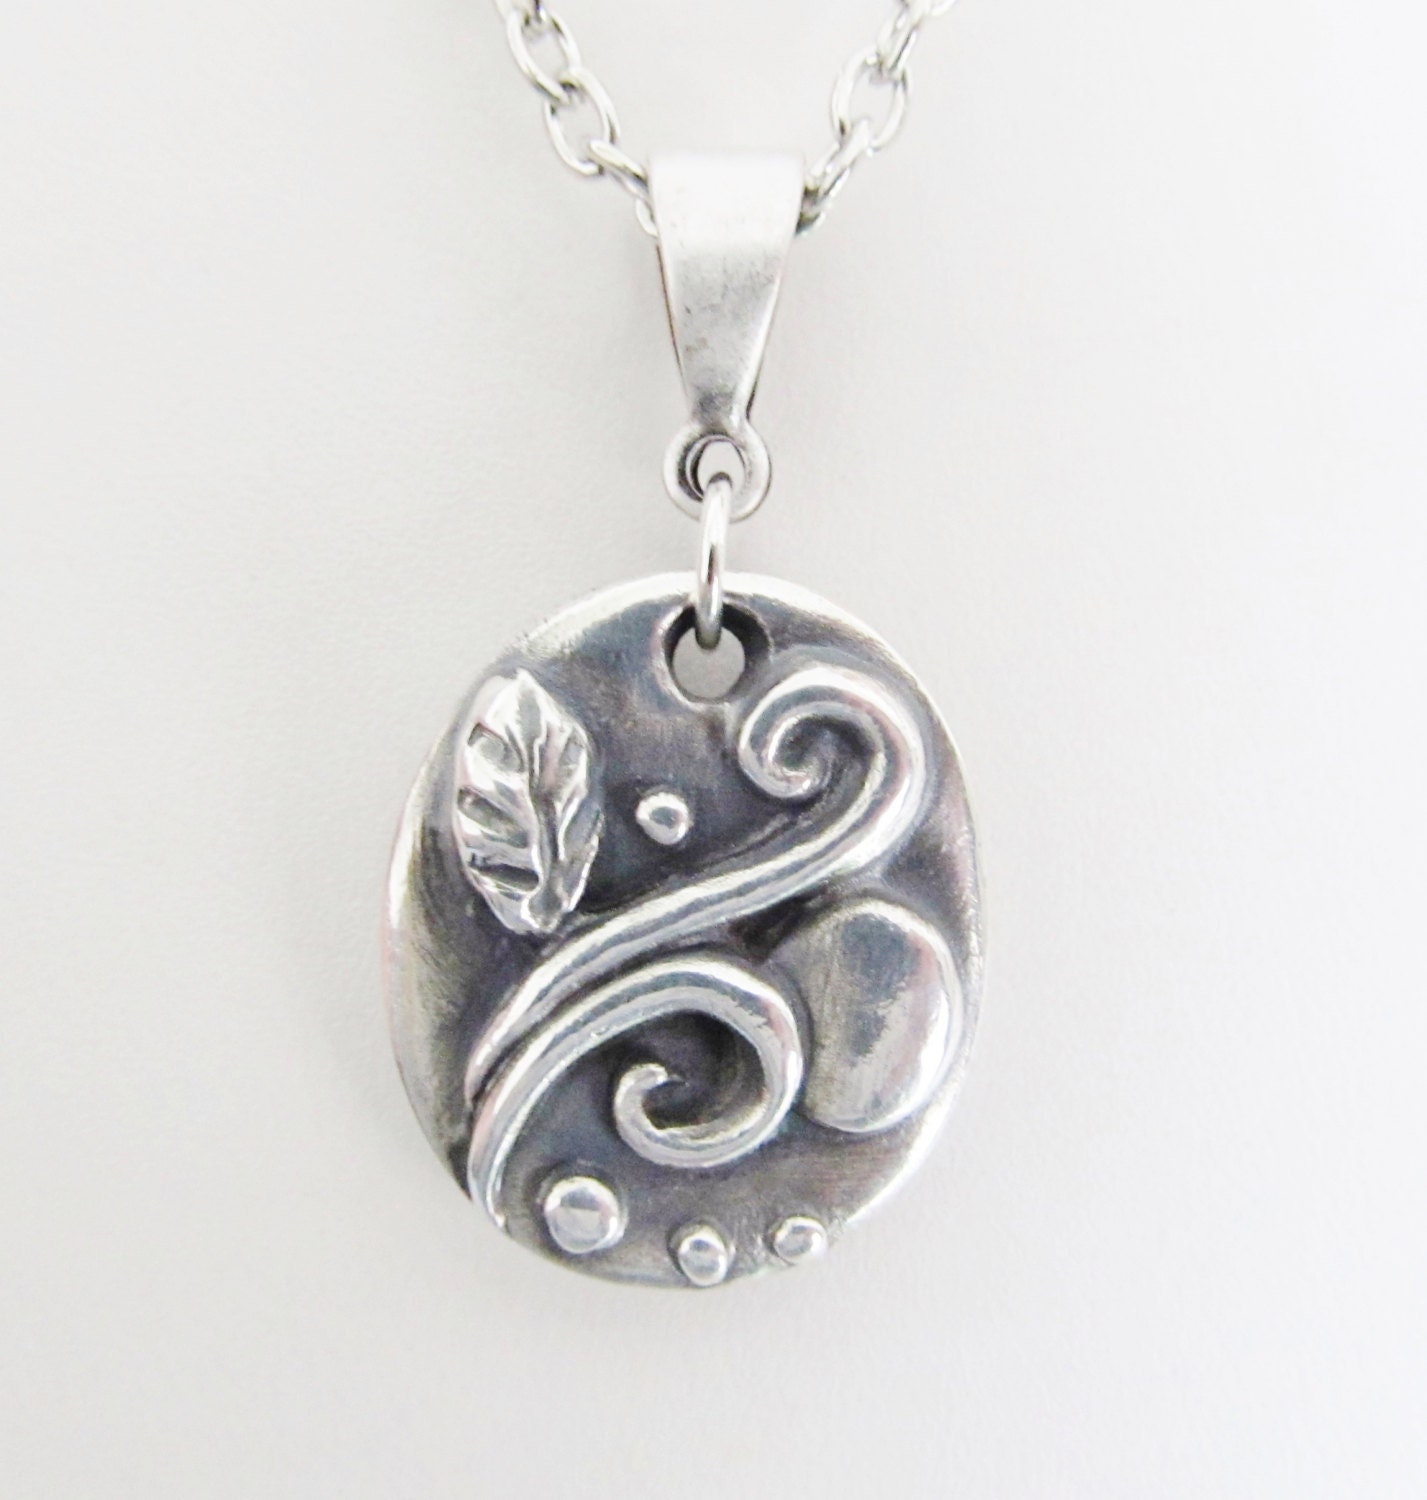 Handcrafted fine silver pendant necklace 999 silver jewelry for Fine silver 999 jewelry